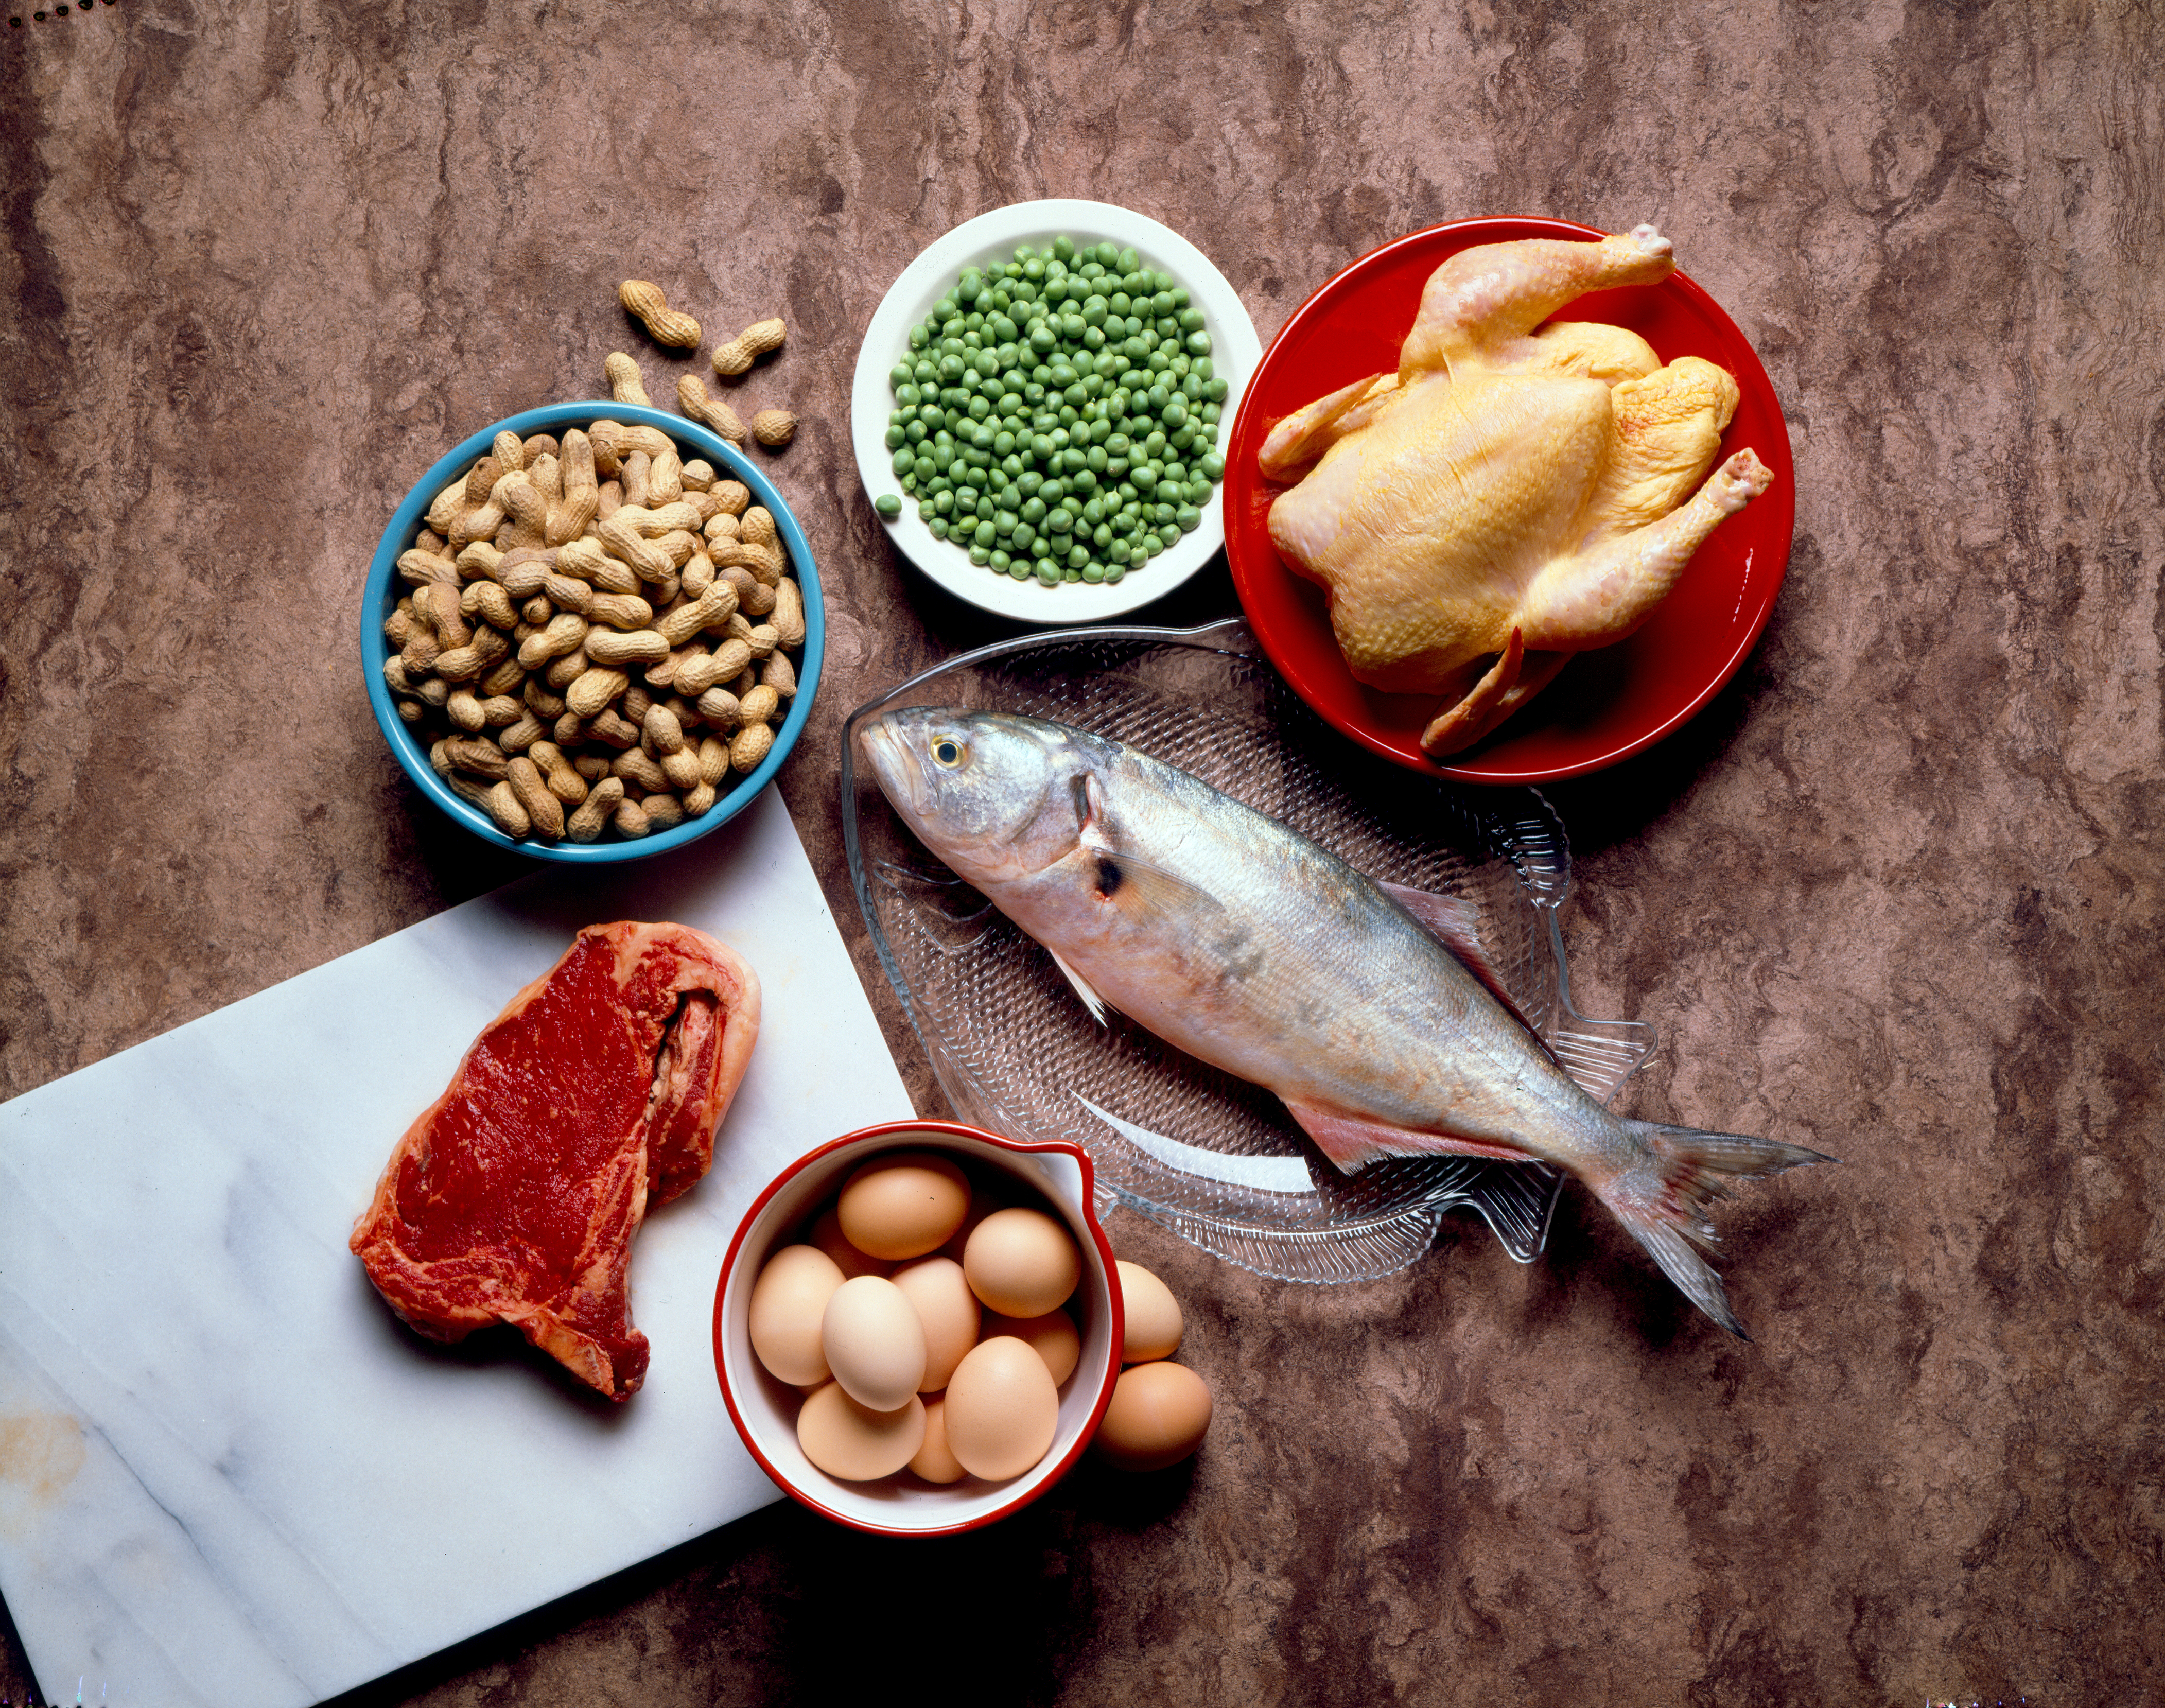 Still life of protein-rich foods, including meat.